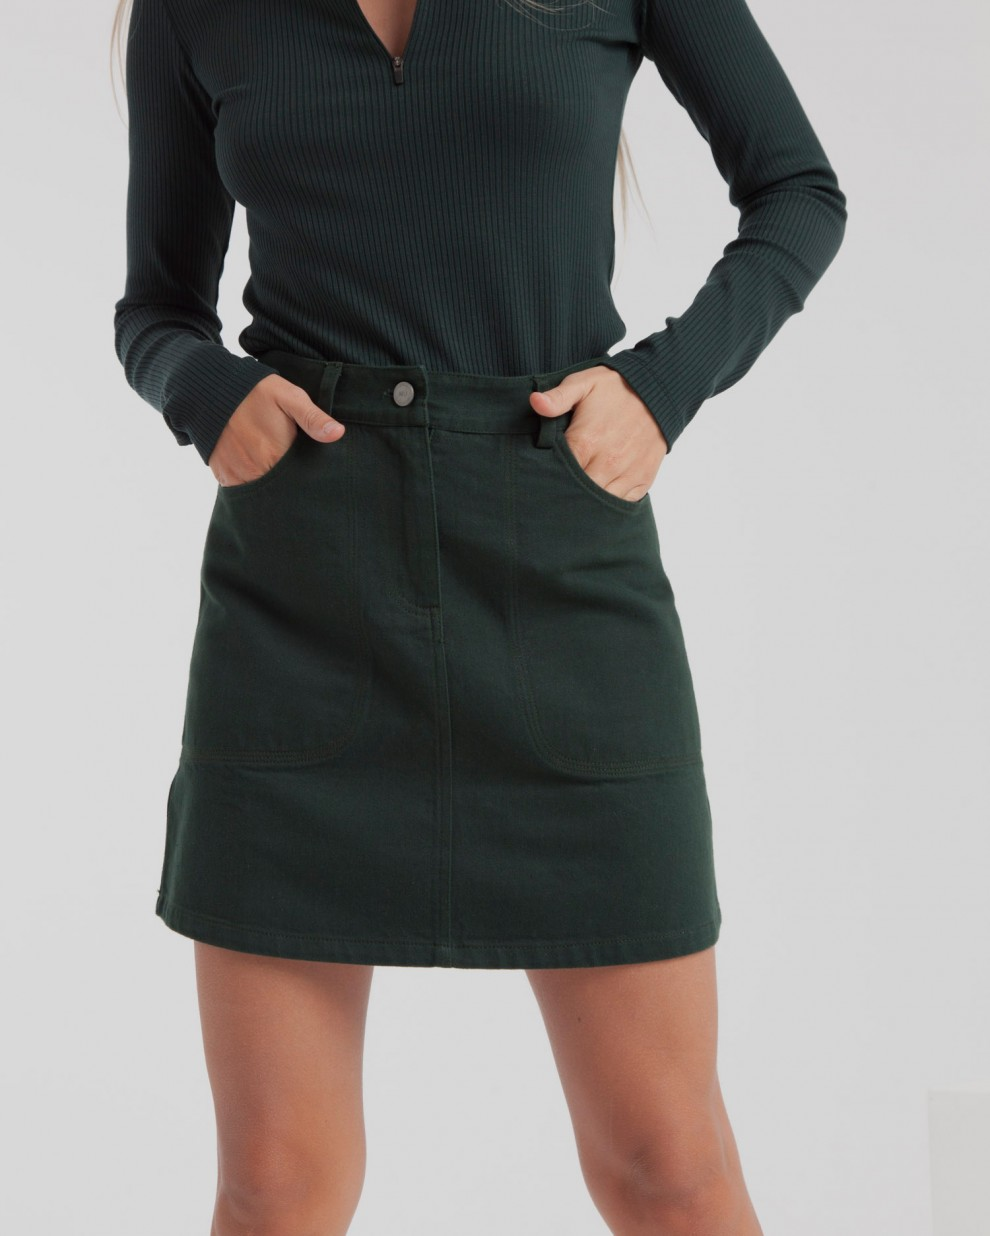 Green Marsha Short Skirt